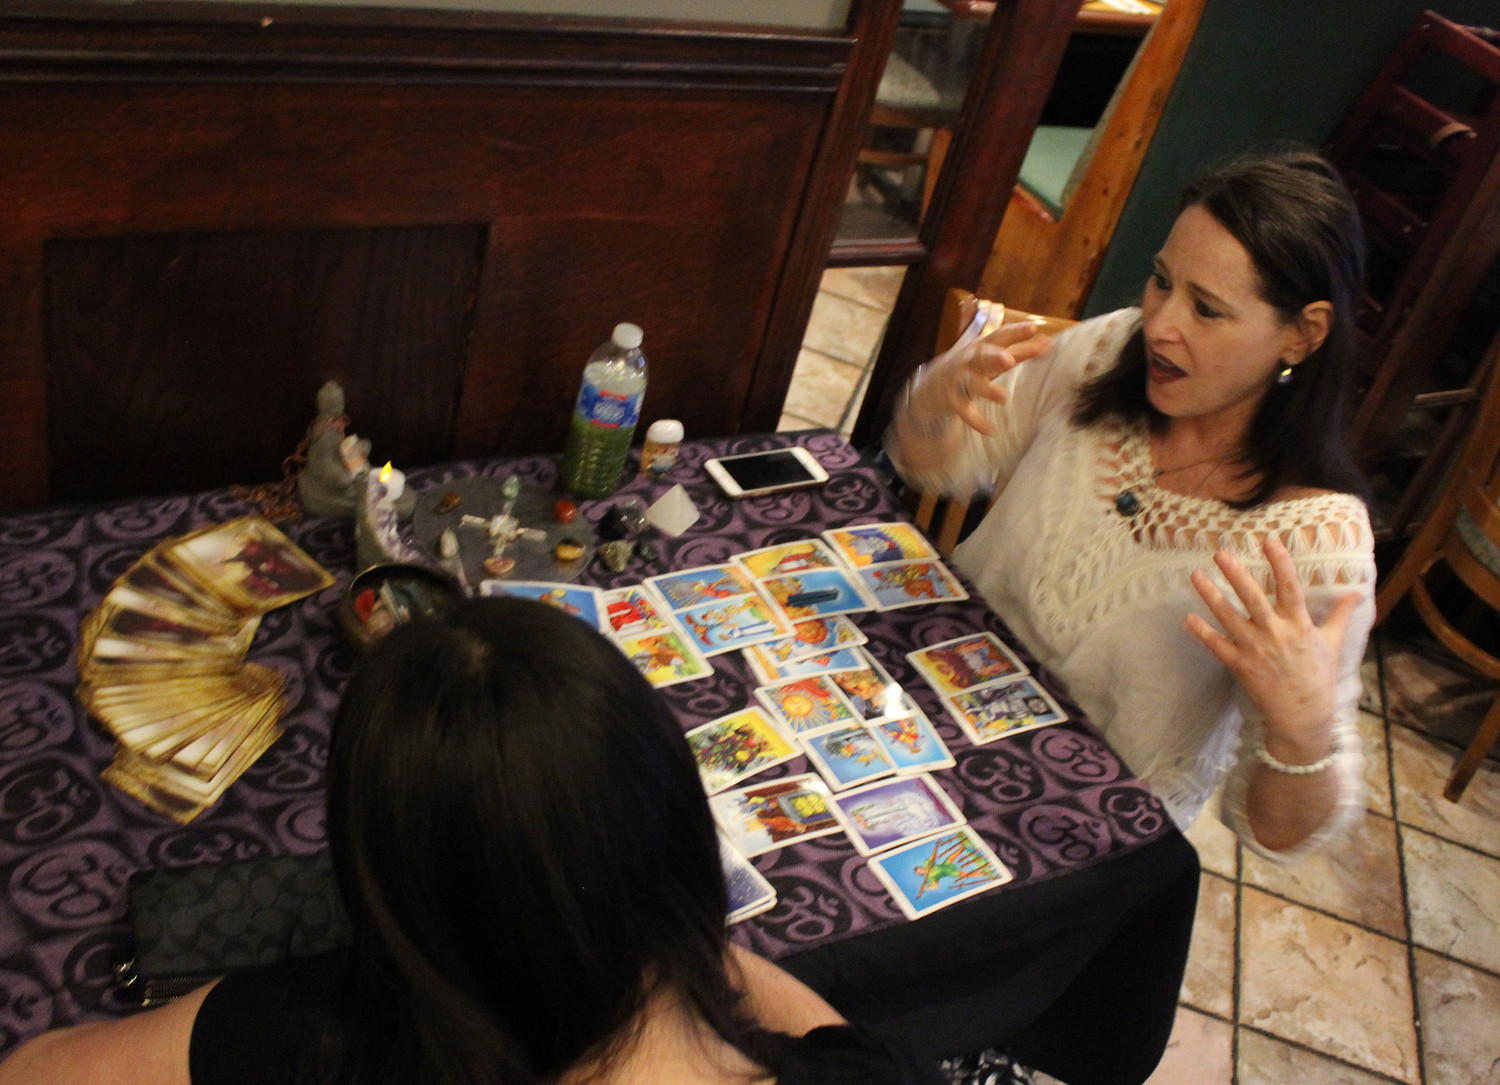 All psychics and mediums work through ESPConnection.com, including tarot card reader Lori Nostramo.